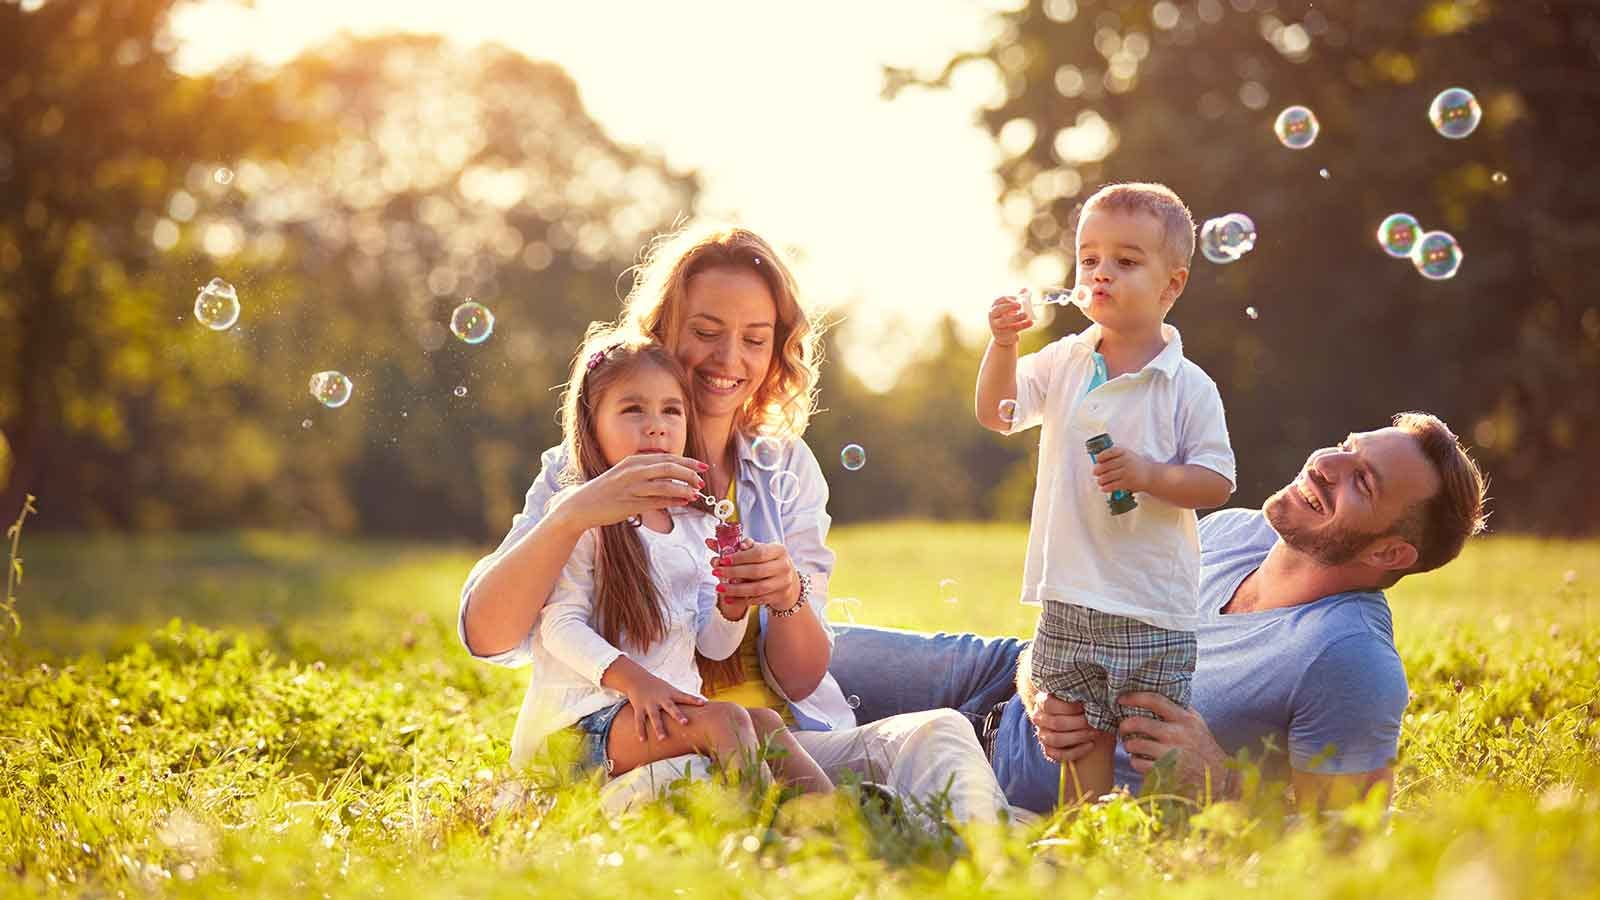 Family blowing bubbles and relaxing in a field.